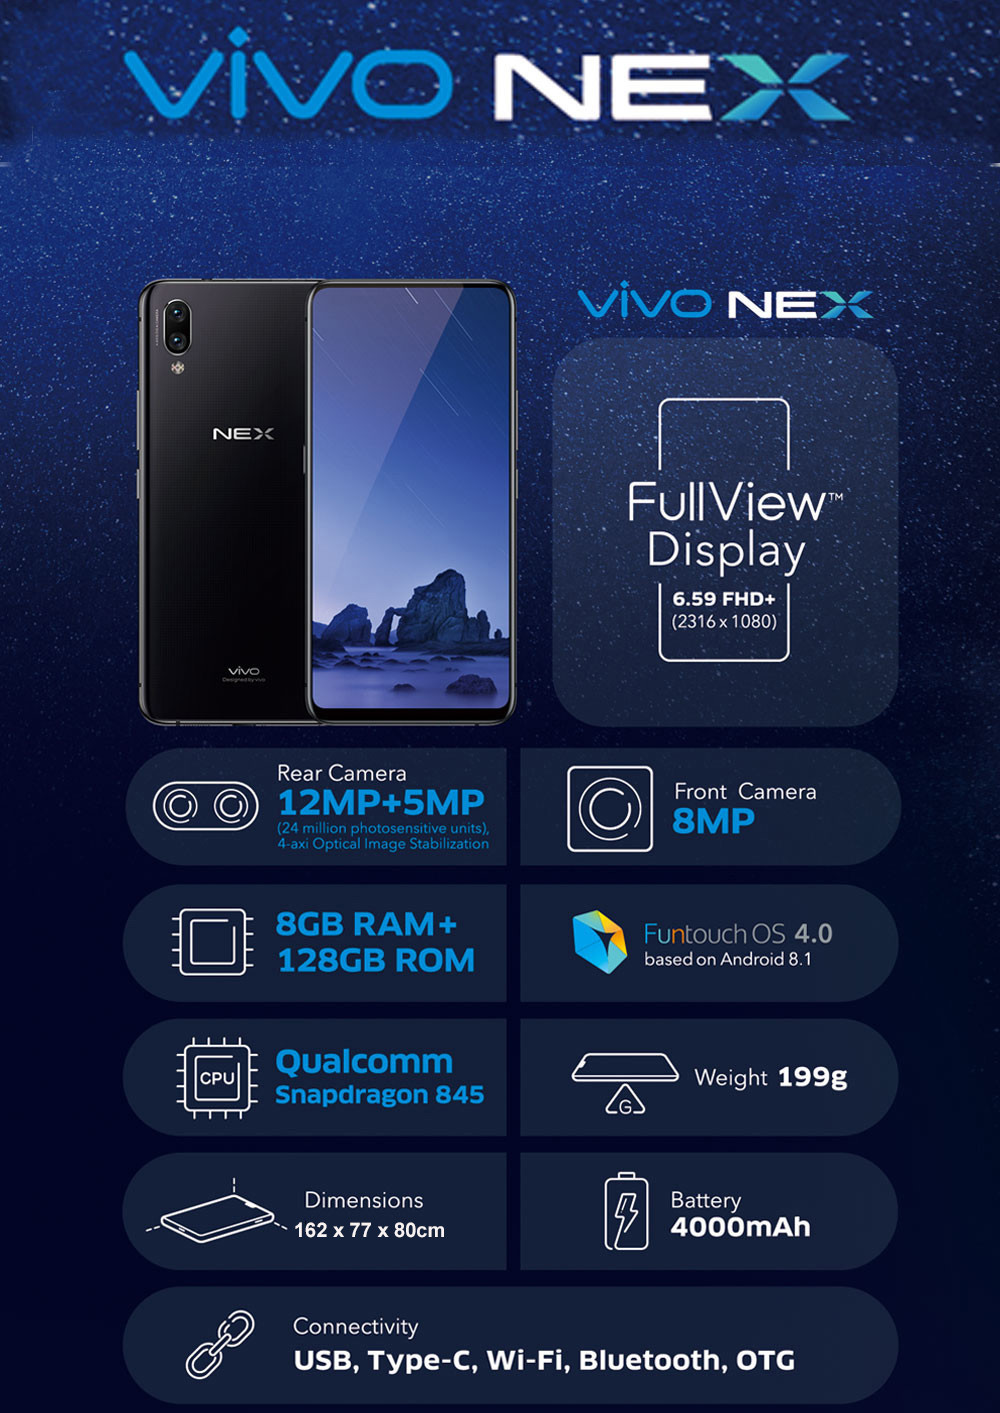 Vivo Nex 4g Phablet Global Version 55999 Free Shipping Street Circuit City Speed Race Android Apps On Google Play 659 Inch 81 Snapdragon 845 Octa Core 28ghz 8gb Ram